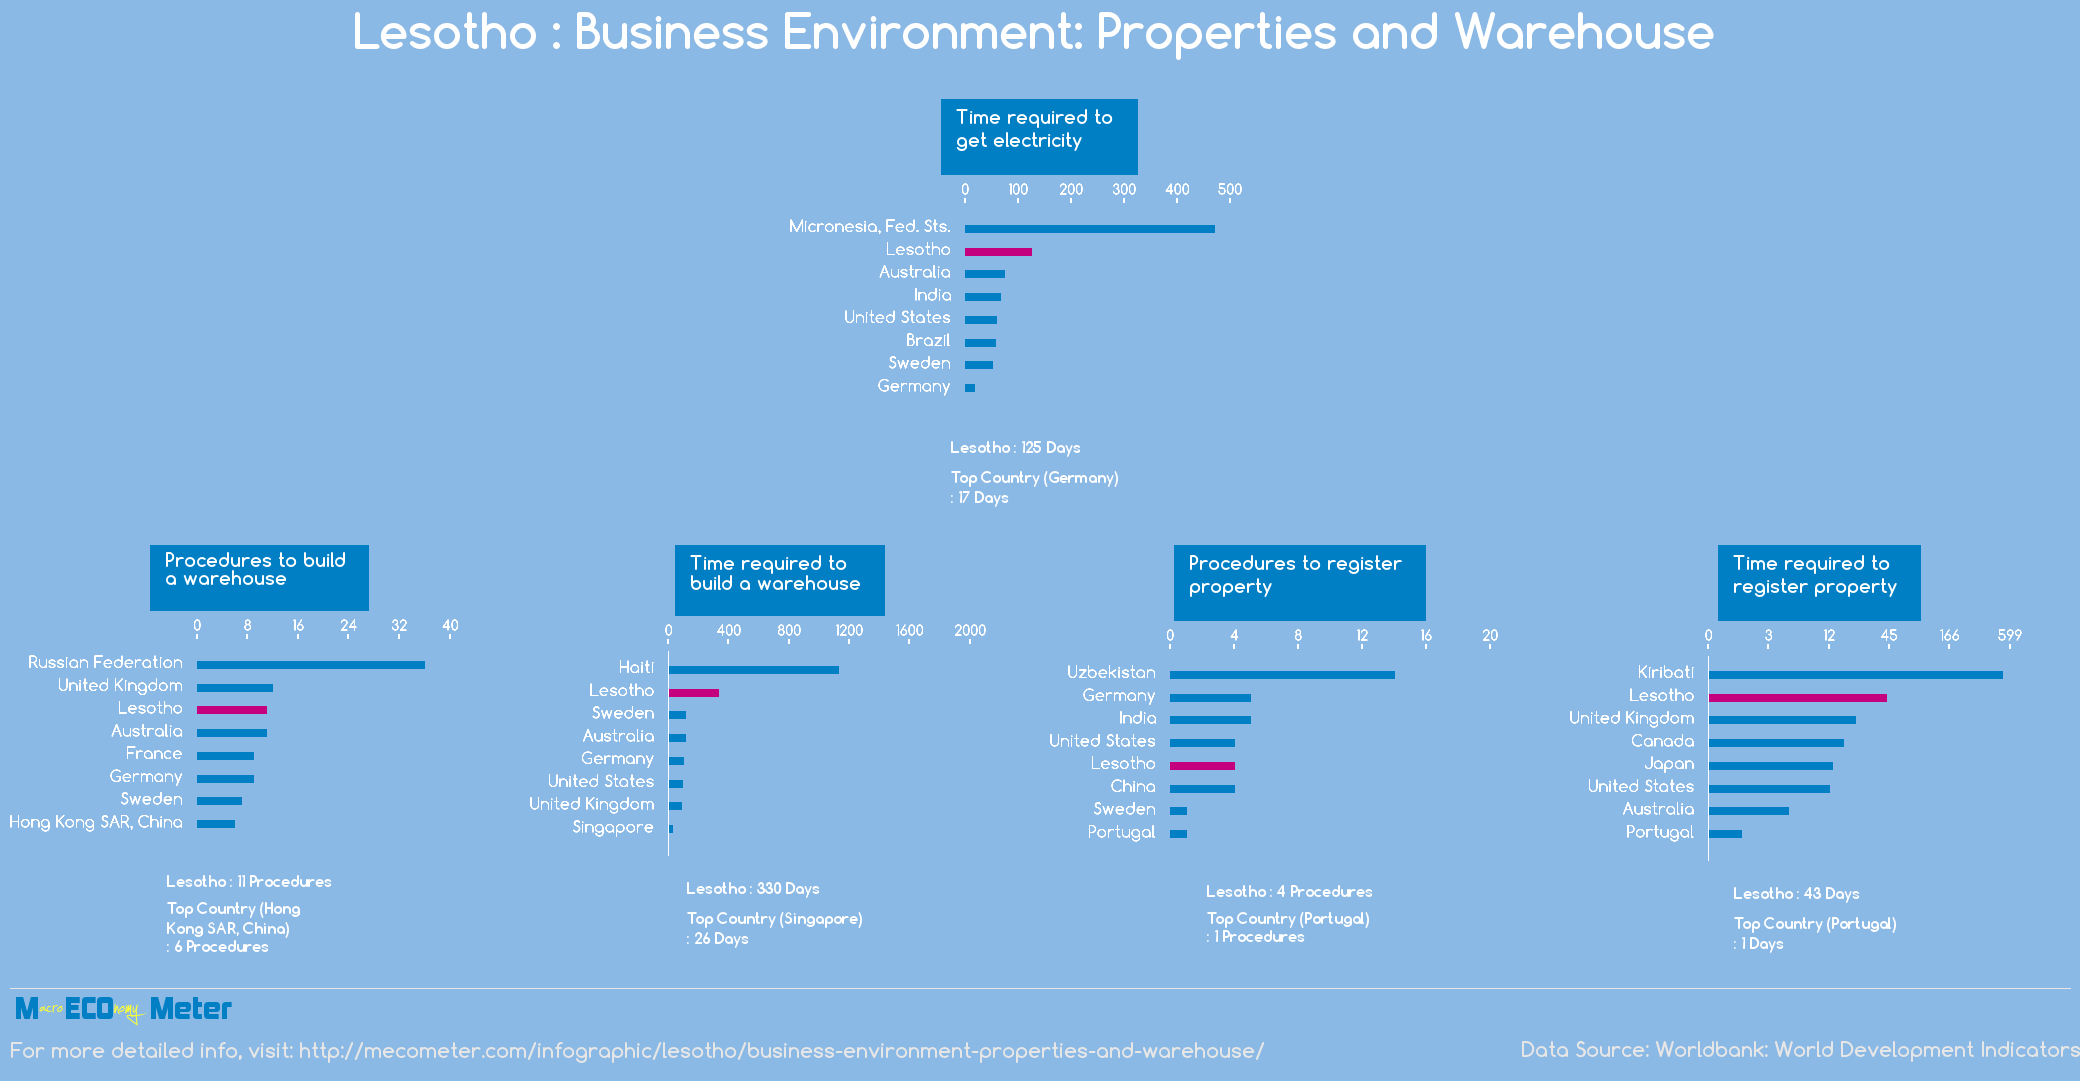 Lesotho : Business Environment: Properties and Warehouse